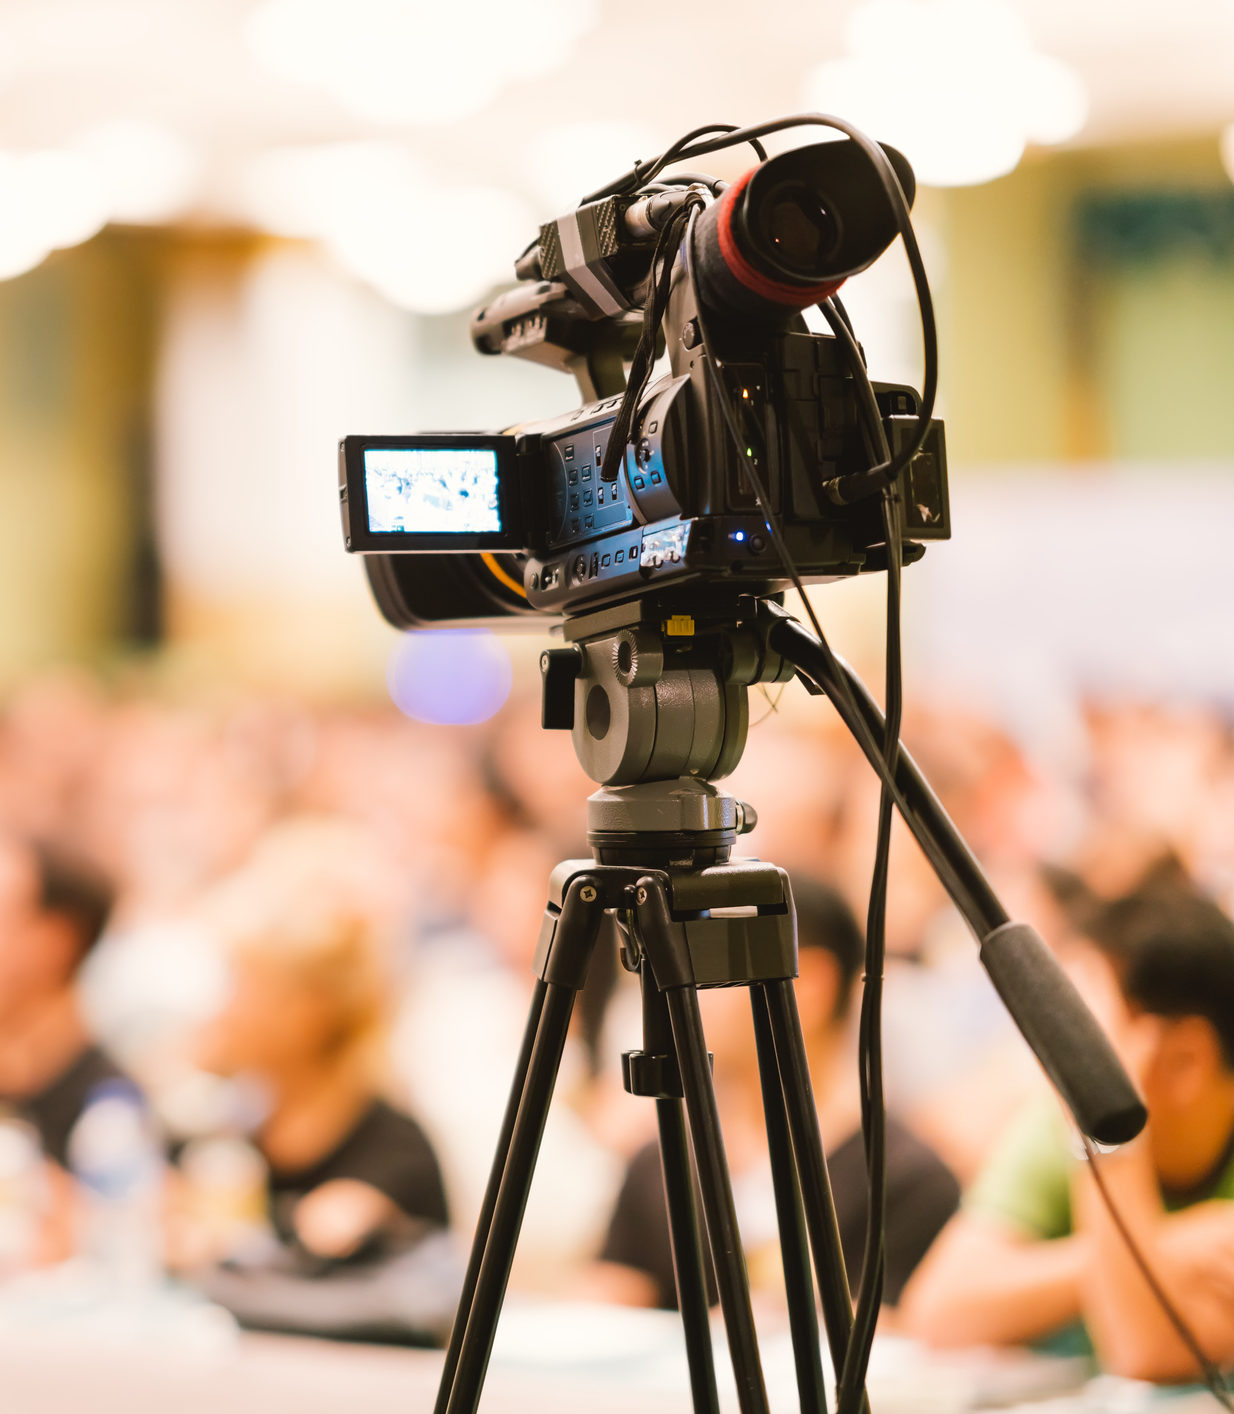 Video camera set record audience in conference hall seminar event. Company meeting, exhibition convention center, corporate announcement, public speaker, journalism industry, or news reporter concept